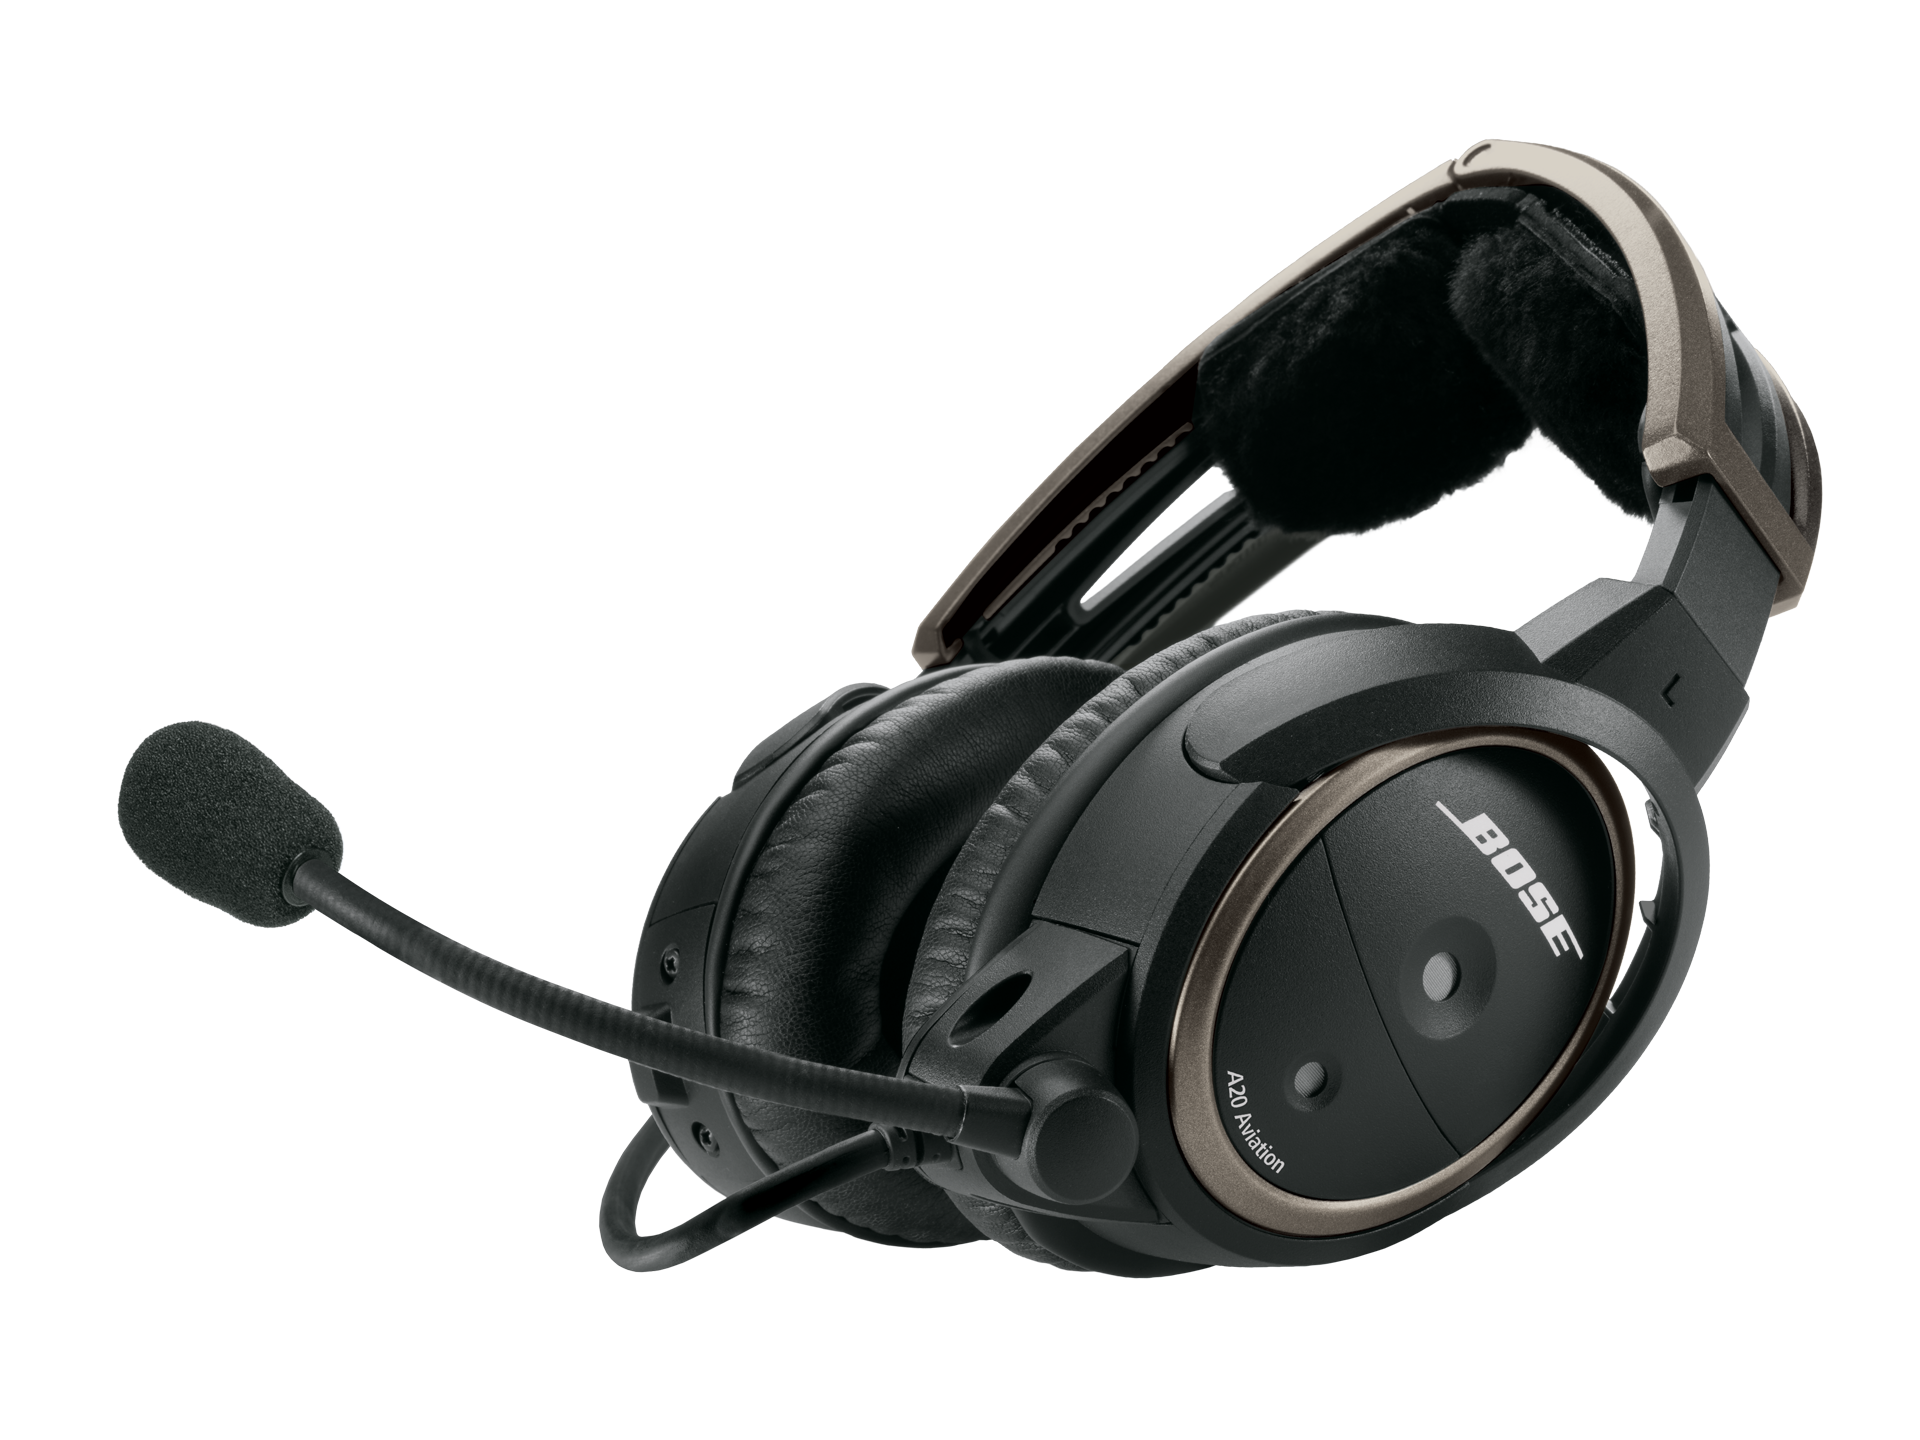 Bose A20 Headset with Fischer Plug, Non-Bluetooth, Battery Powered, Straight Cable, Lo Imp (324843-2150)